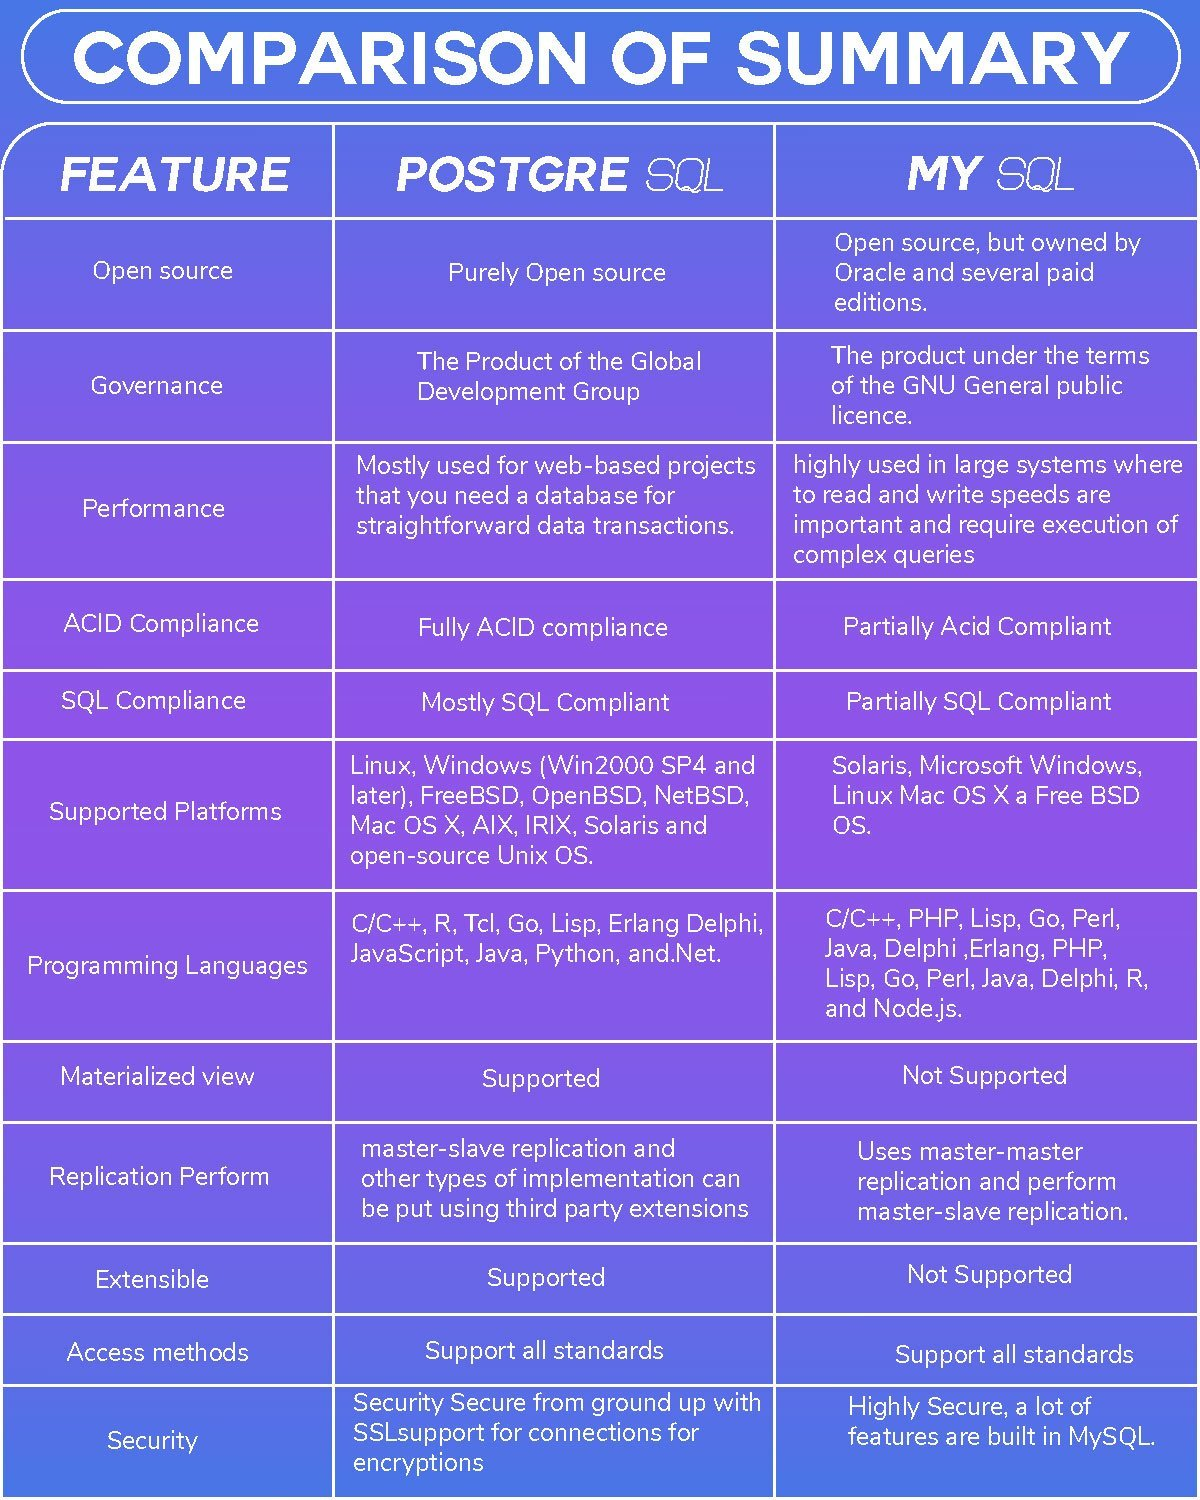 features-postgresql-vs-mysql